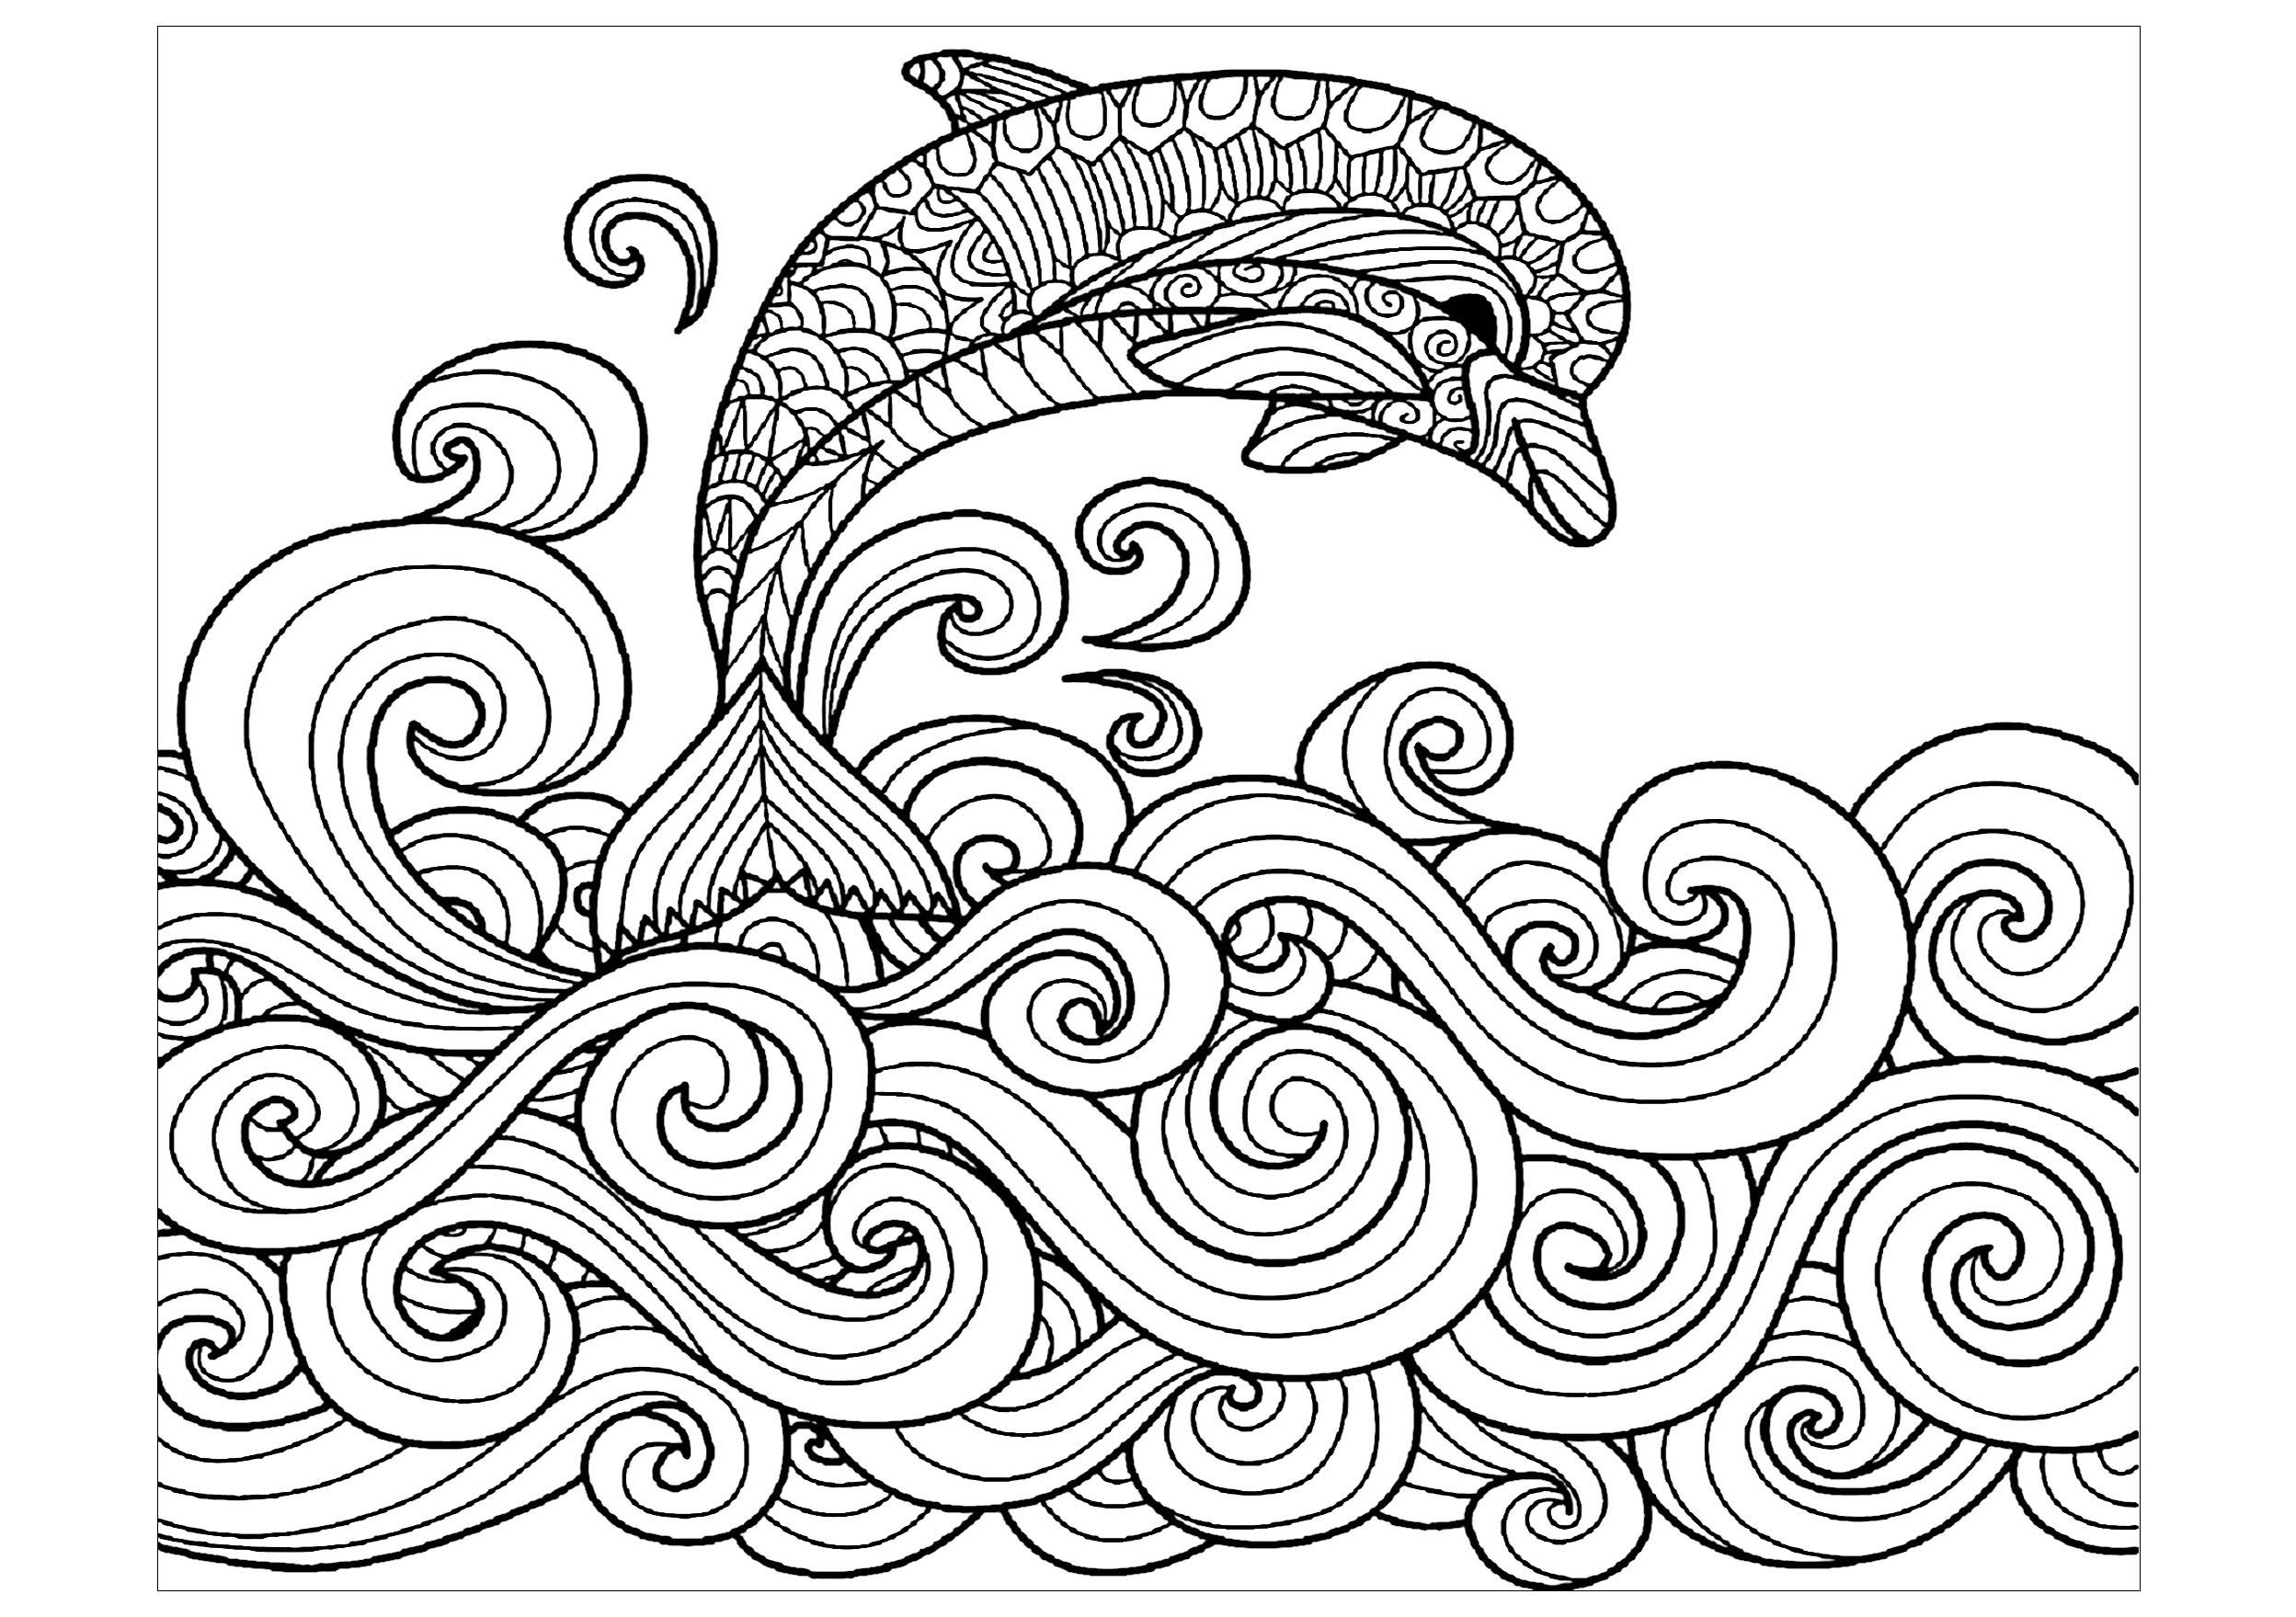 Dolphin Coloring Pages For Adults